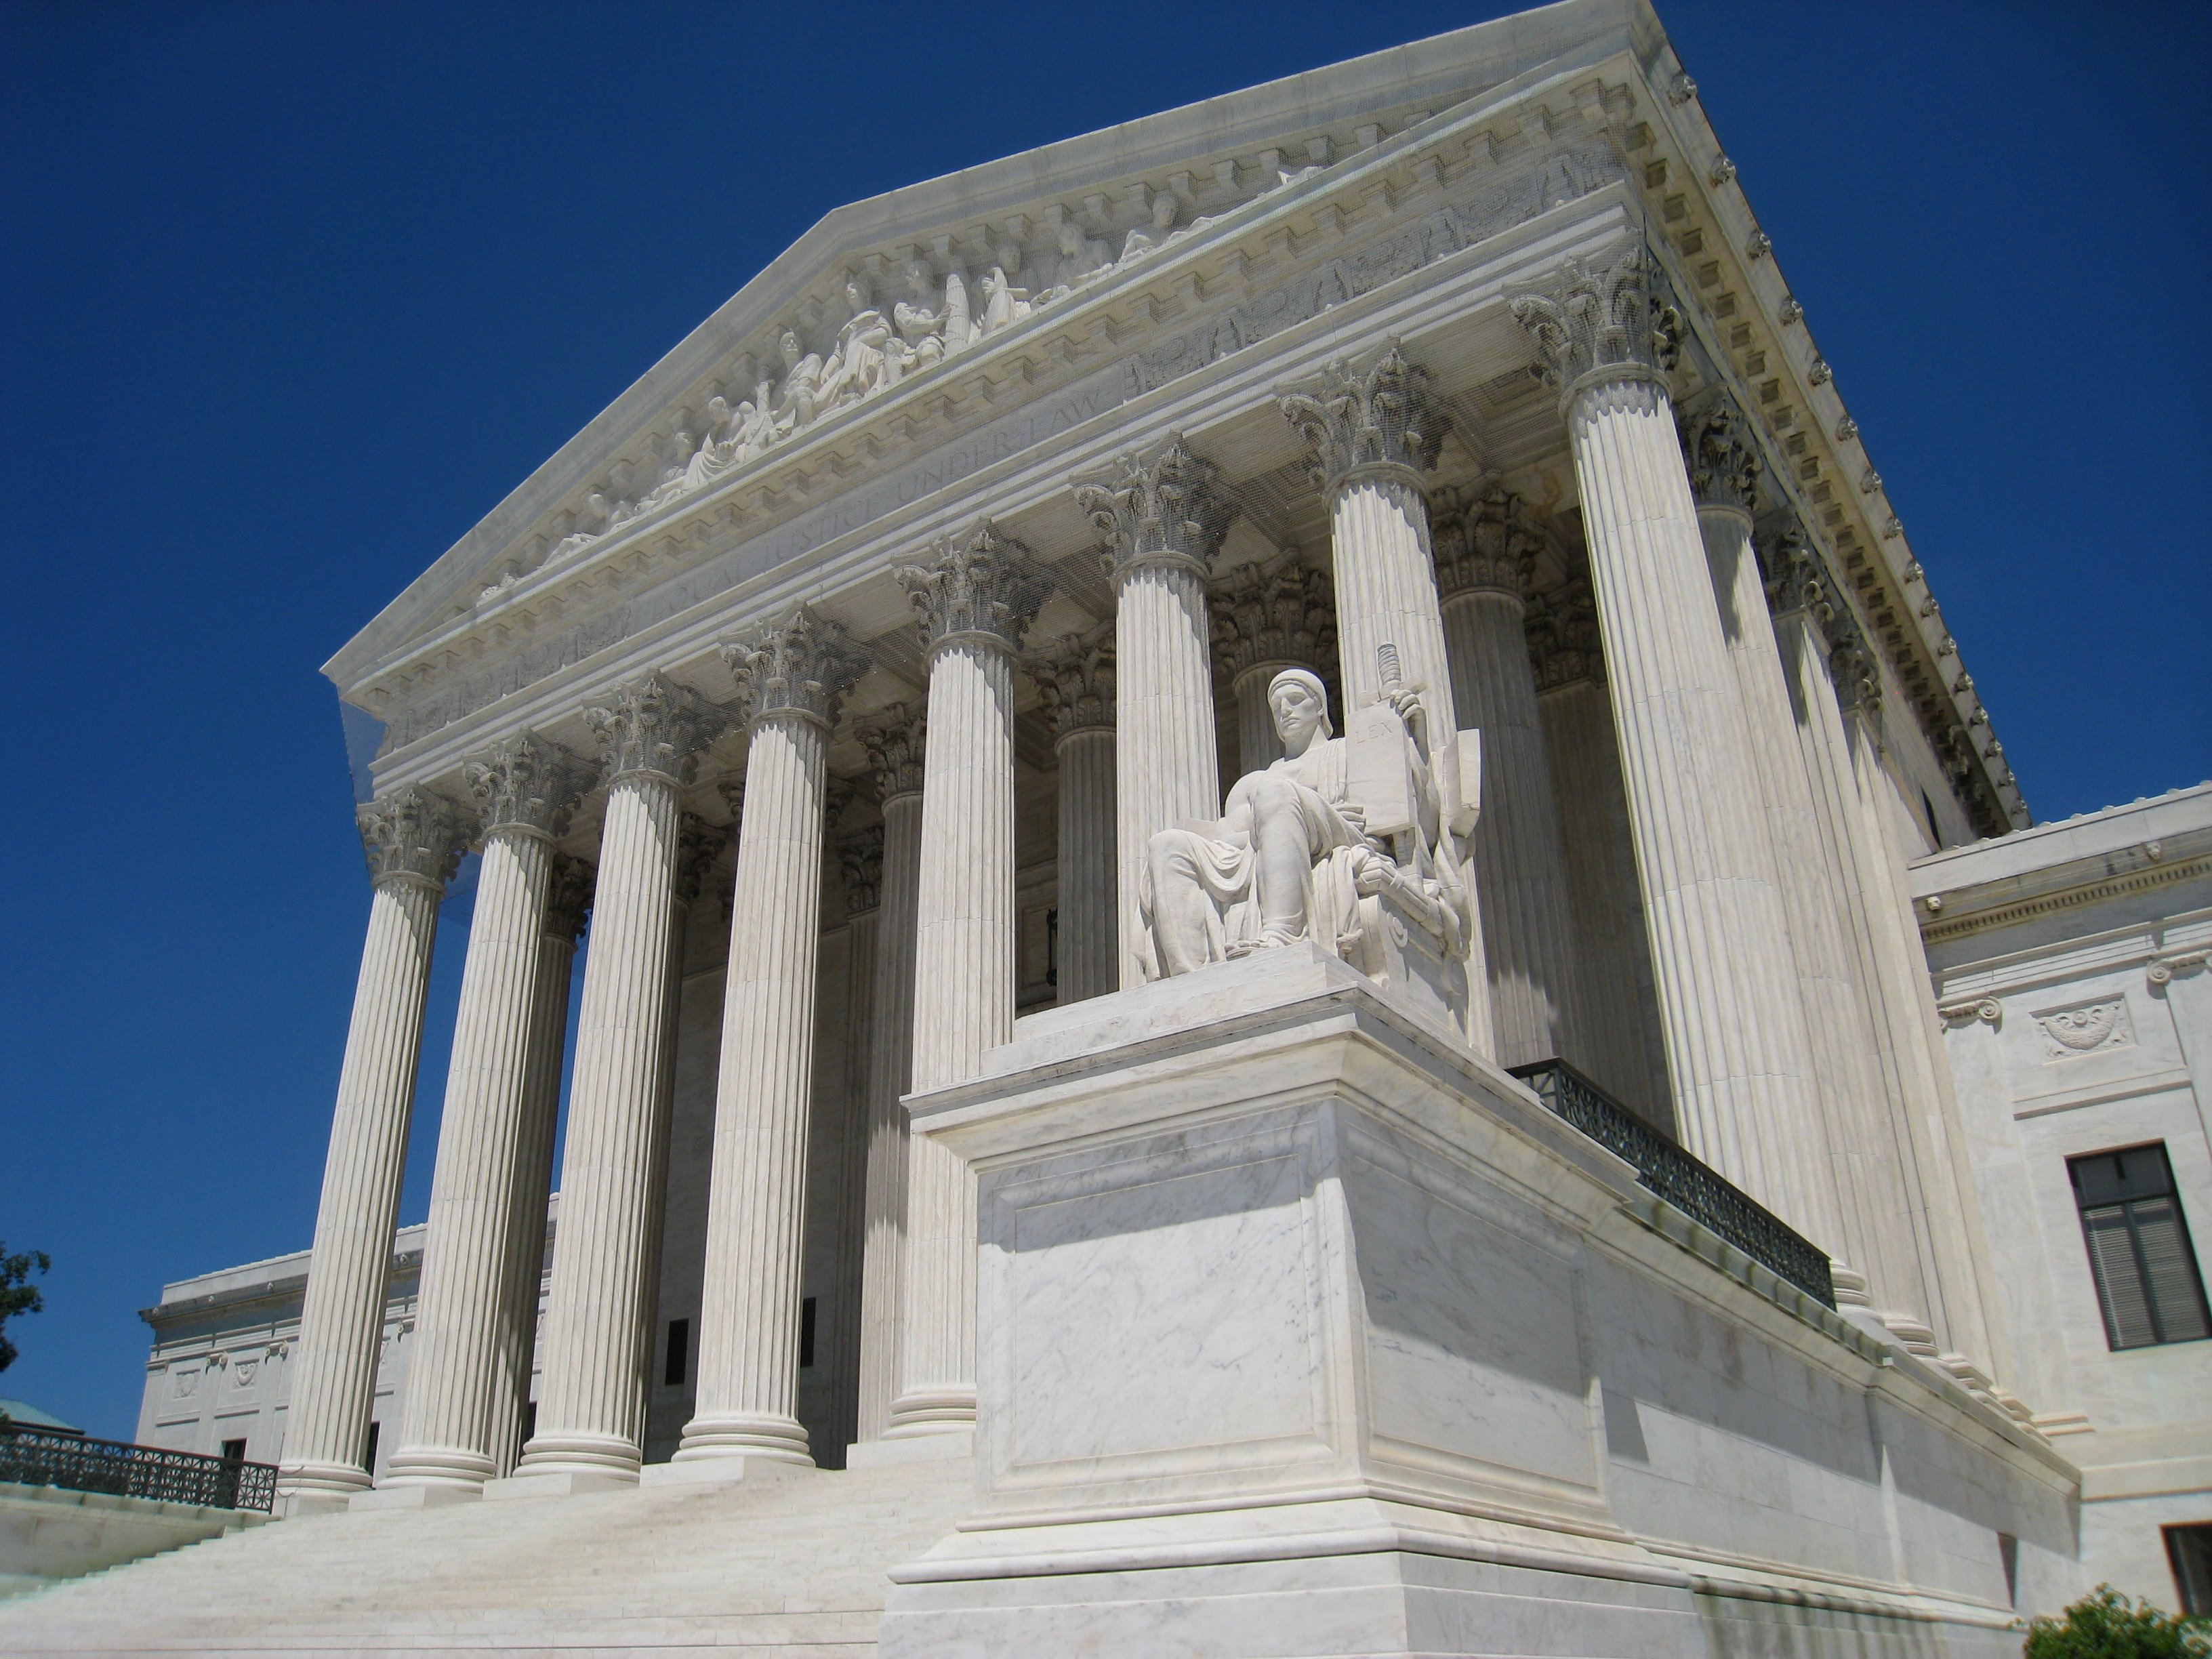 The Supreme Court of the United States (Photo courtesy of Wikimedia Commons)